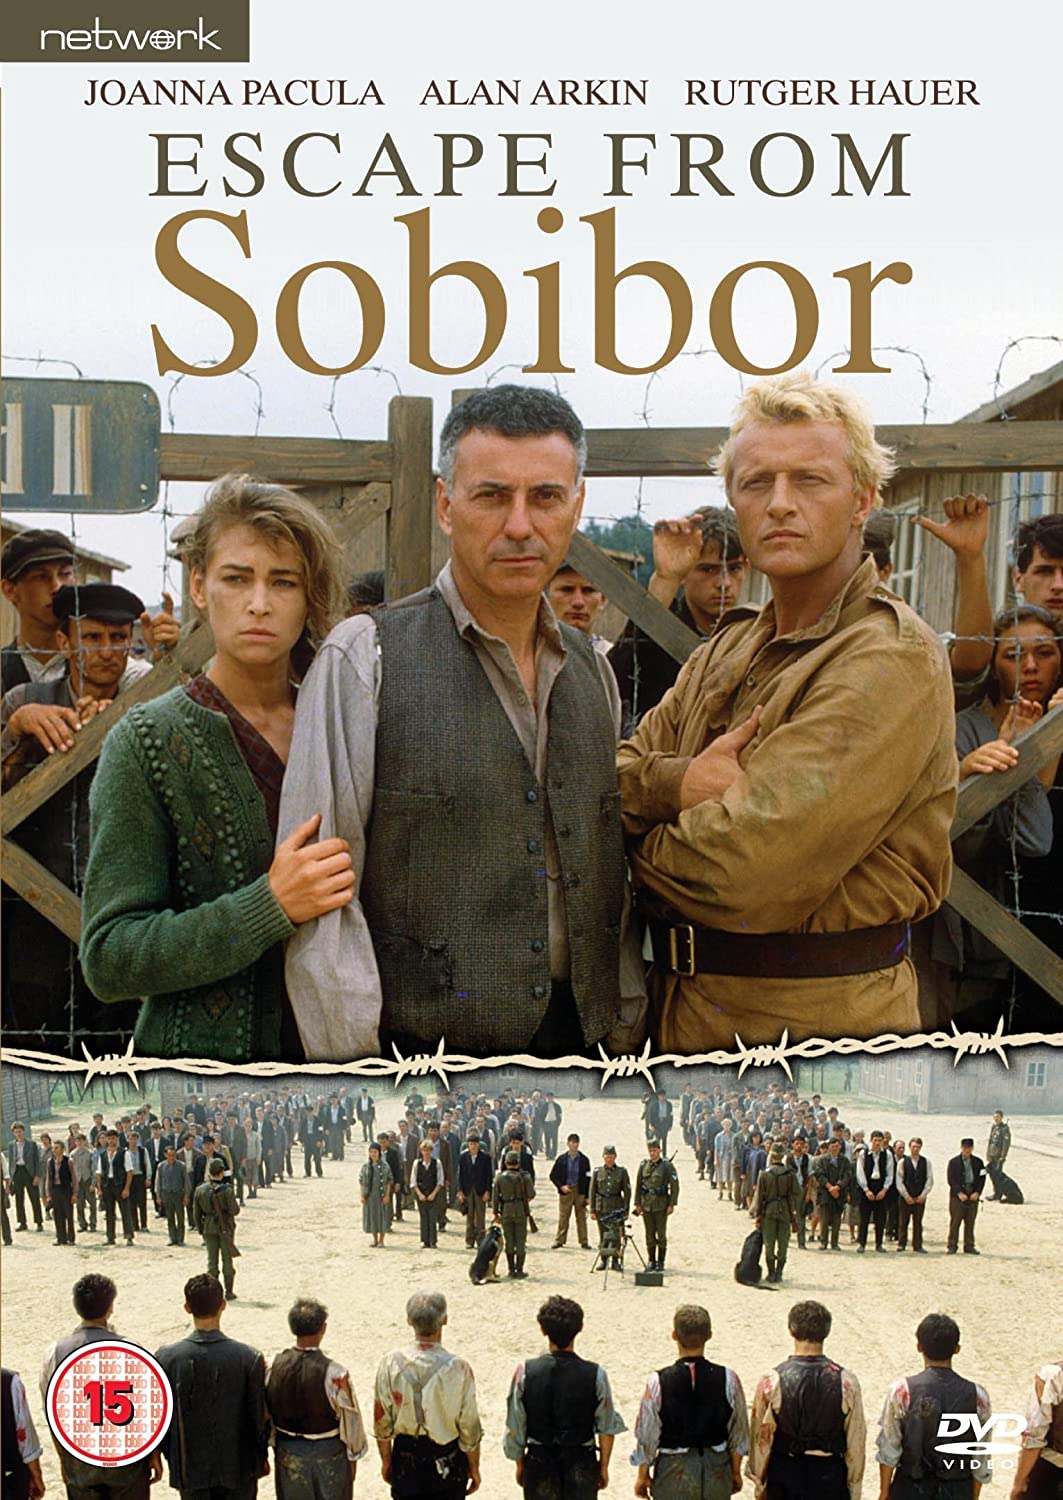 escape from sobibor Today marks the 74th anniversary of the sobibor uprising the reason why i call this article the real escape from sobibor is not to mistake it for the movie escape.